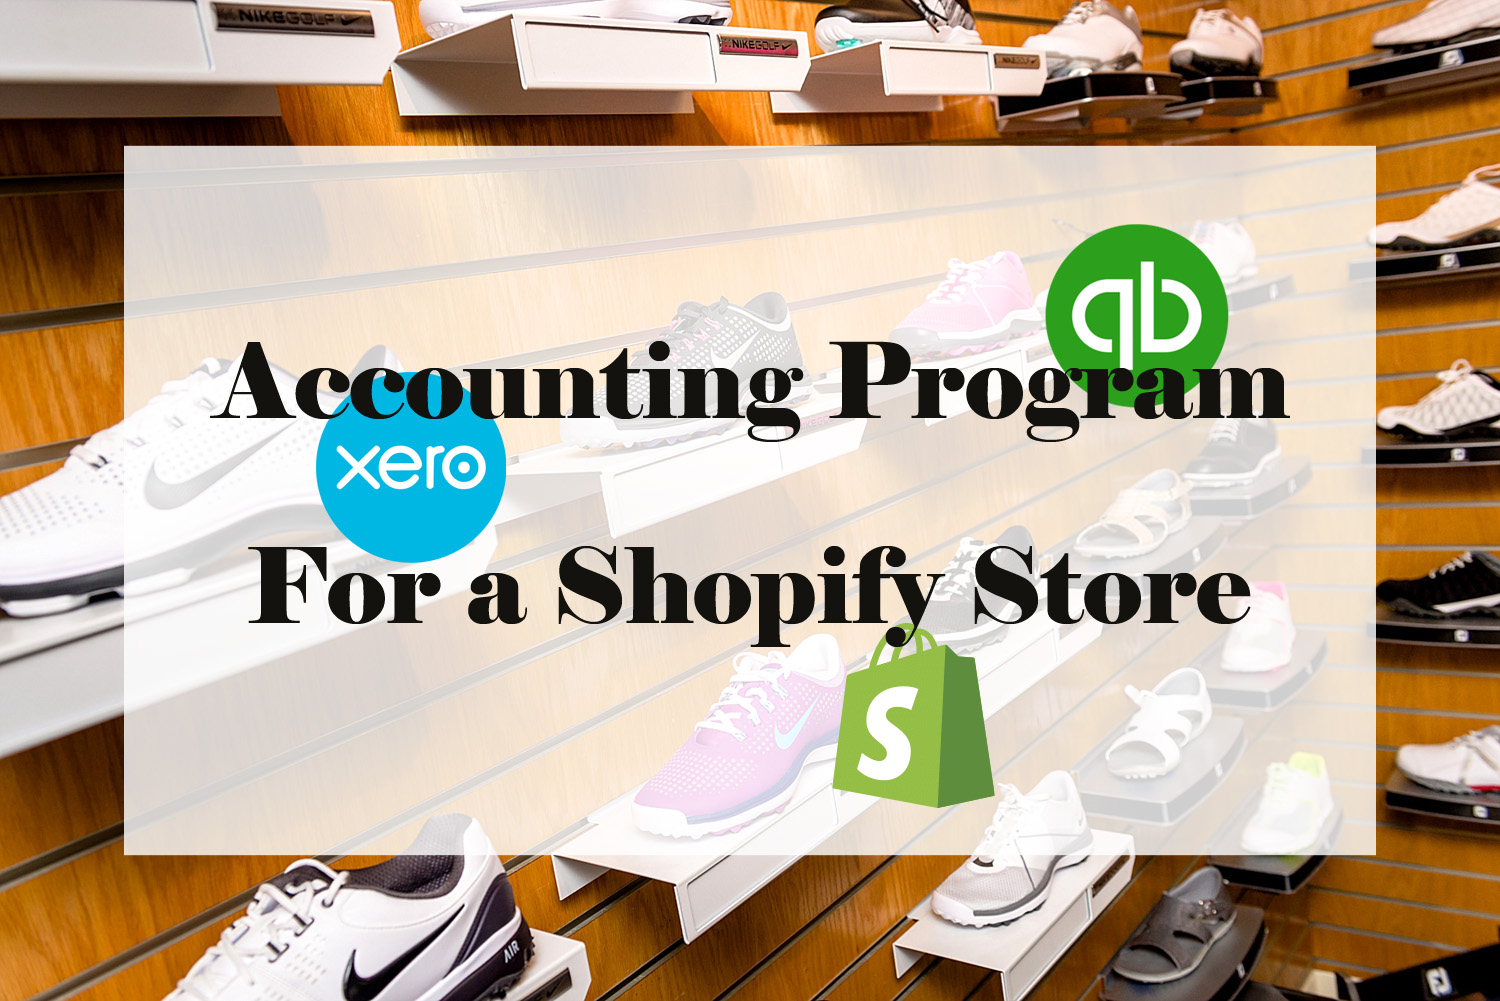 Which accounting program to use for a Shopify store